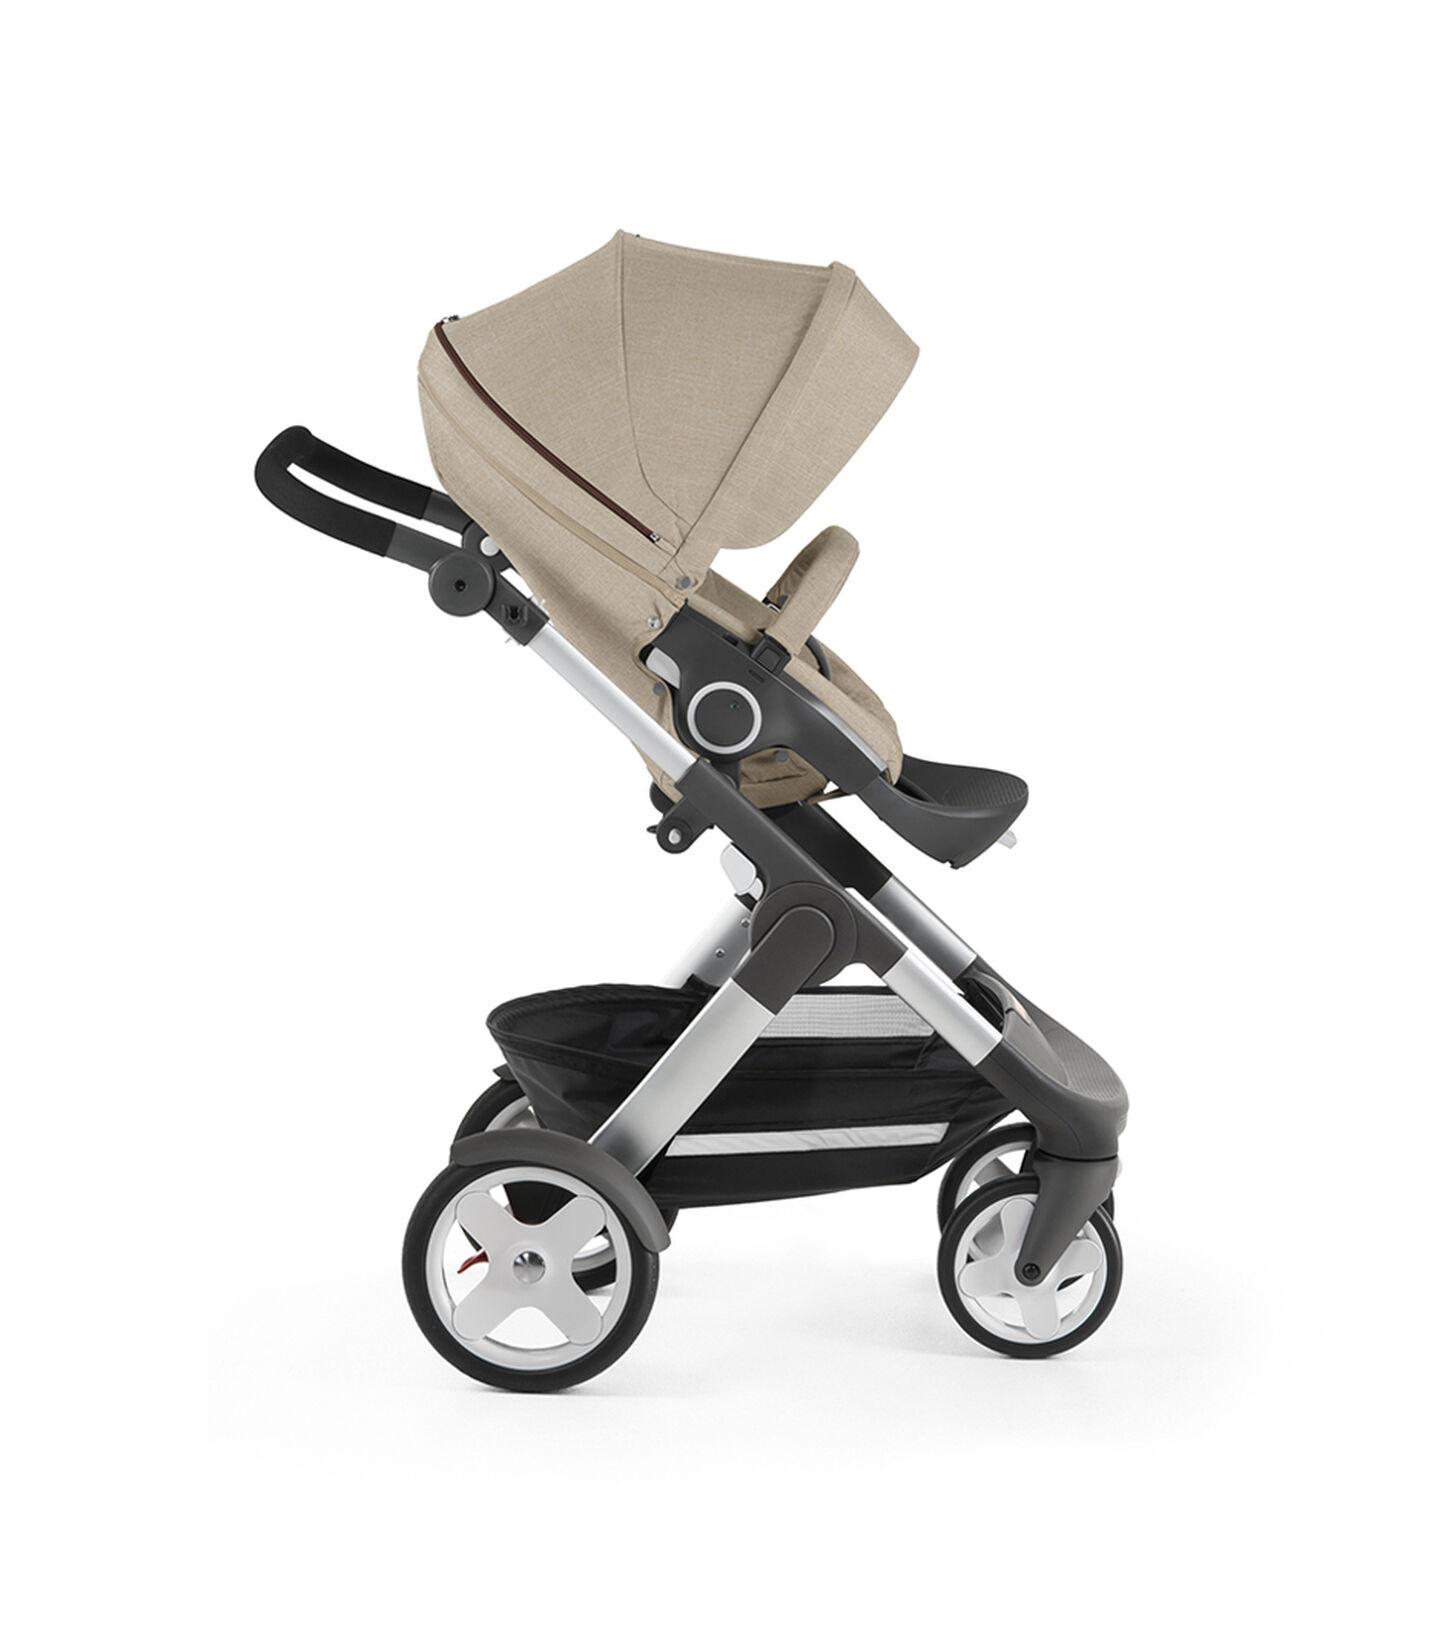 Stokke® Trailz with Stokke® Stroller Seat, forward facing, rest position. Beige Melange.